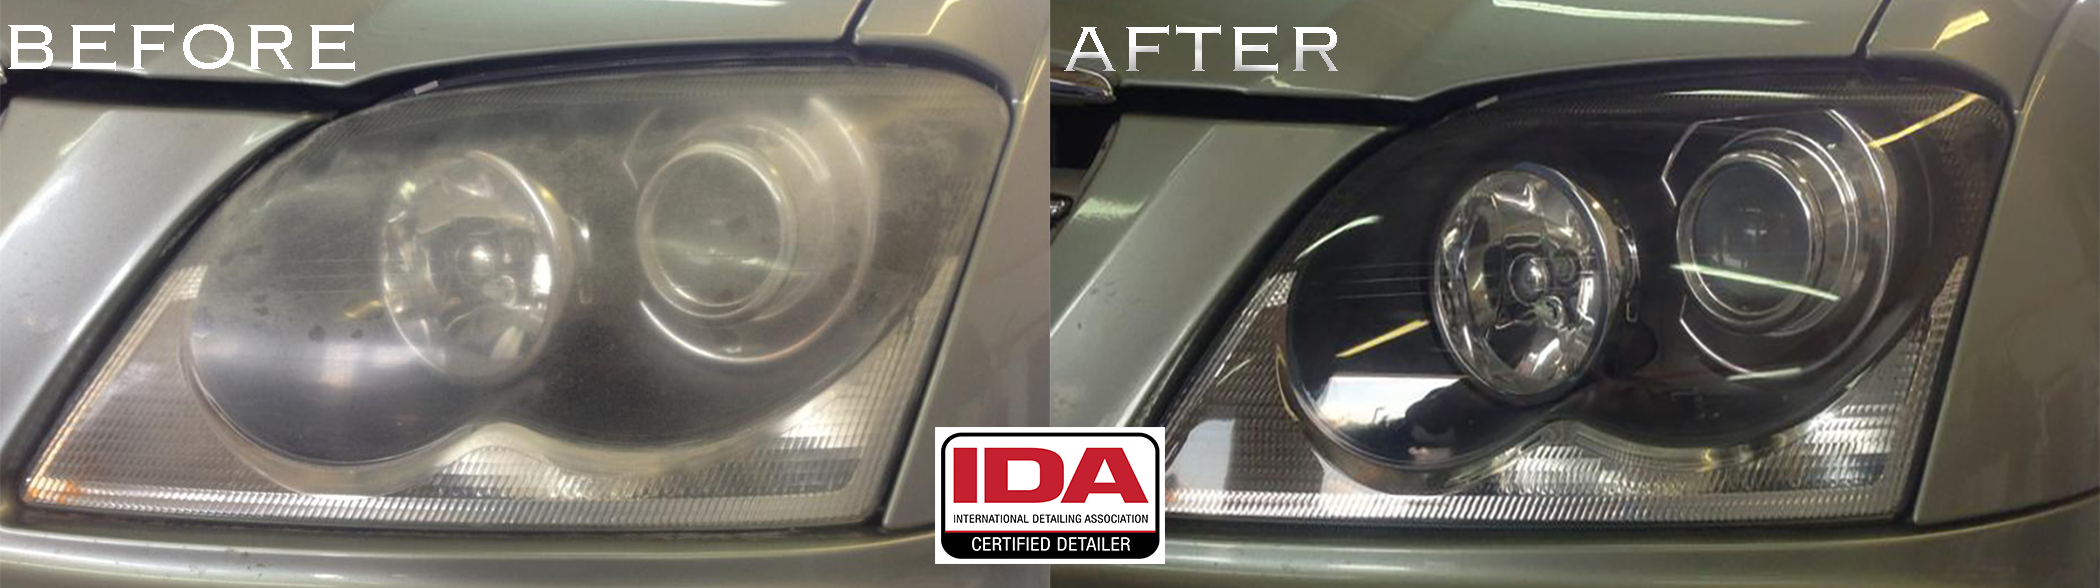 Headlight-Restoration-Before-After-Indianapolis.png